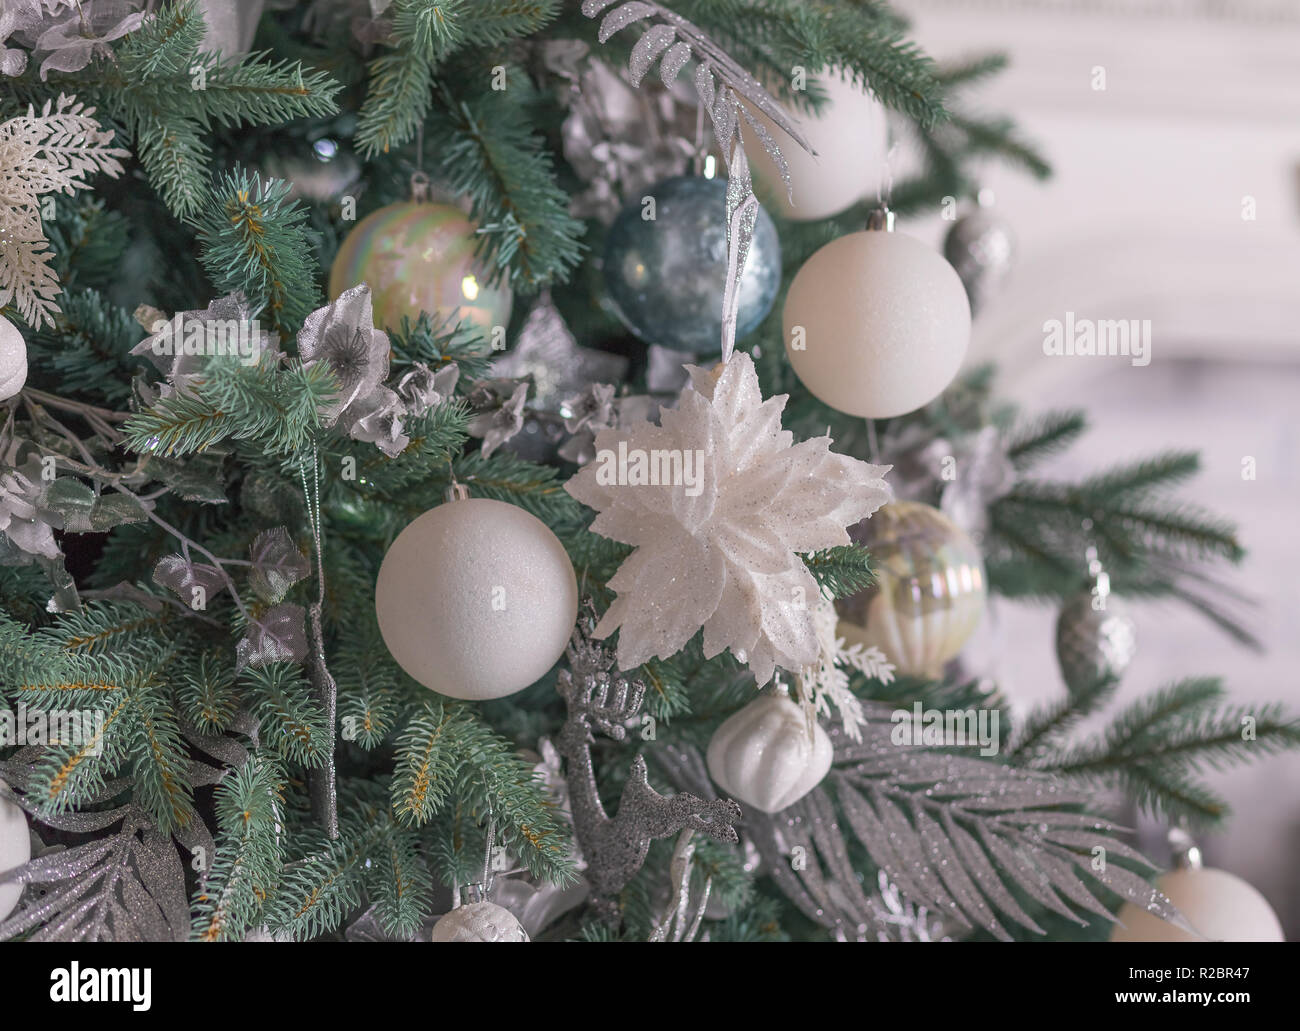 Pastel Christmas Ornaments.Silver Christmas Ornaments Hanging On Fir Tree Section Of A